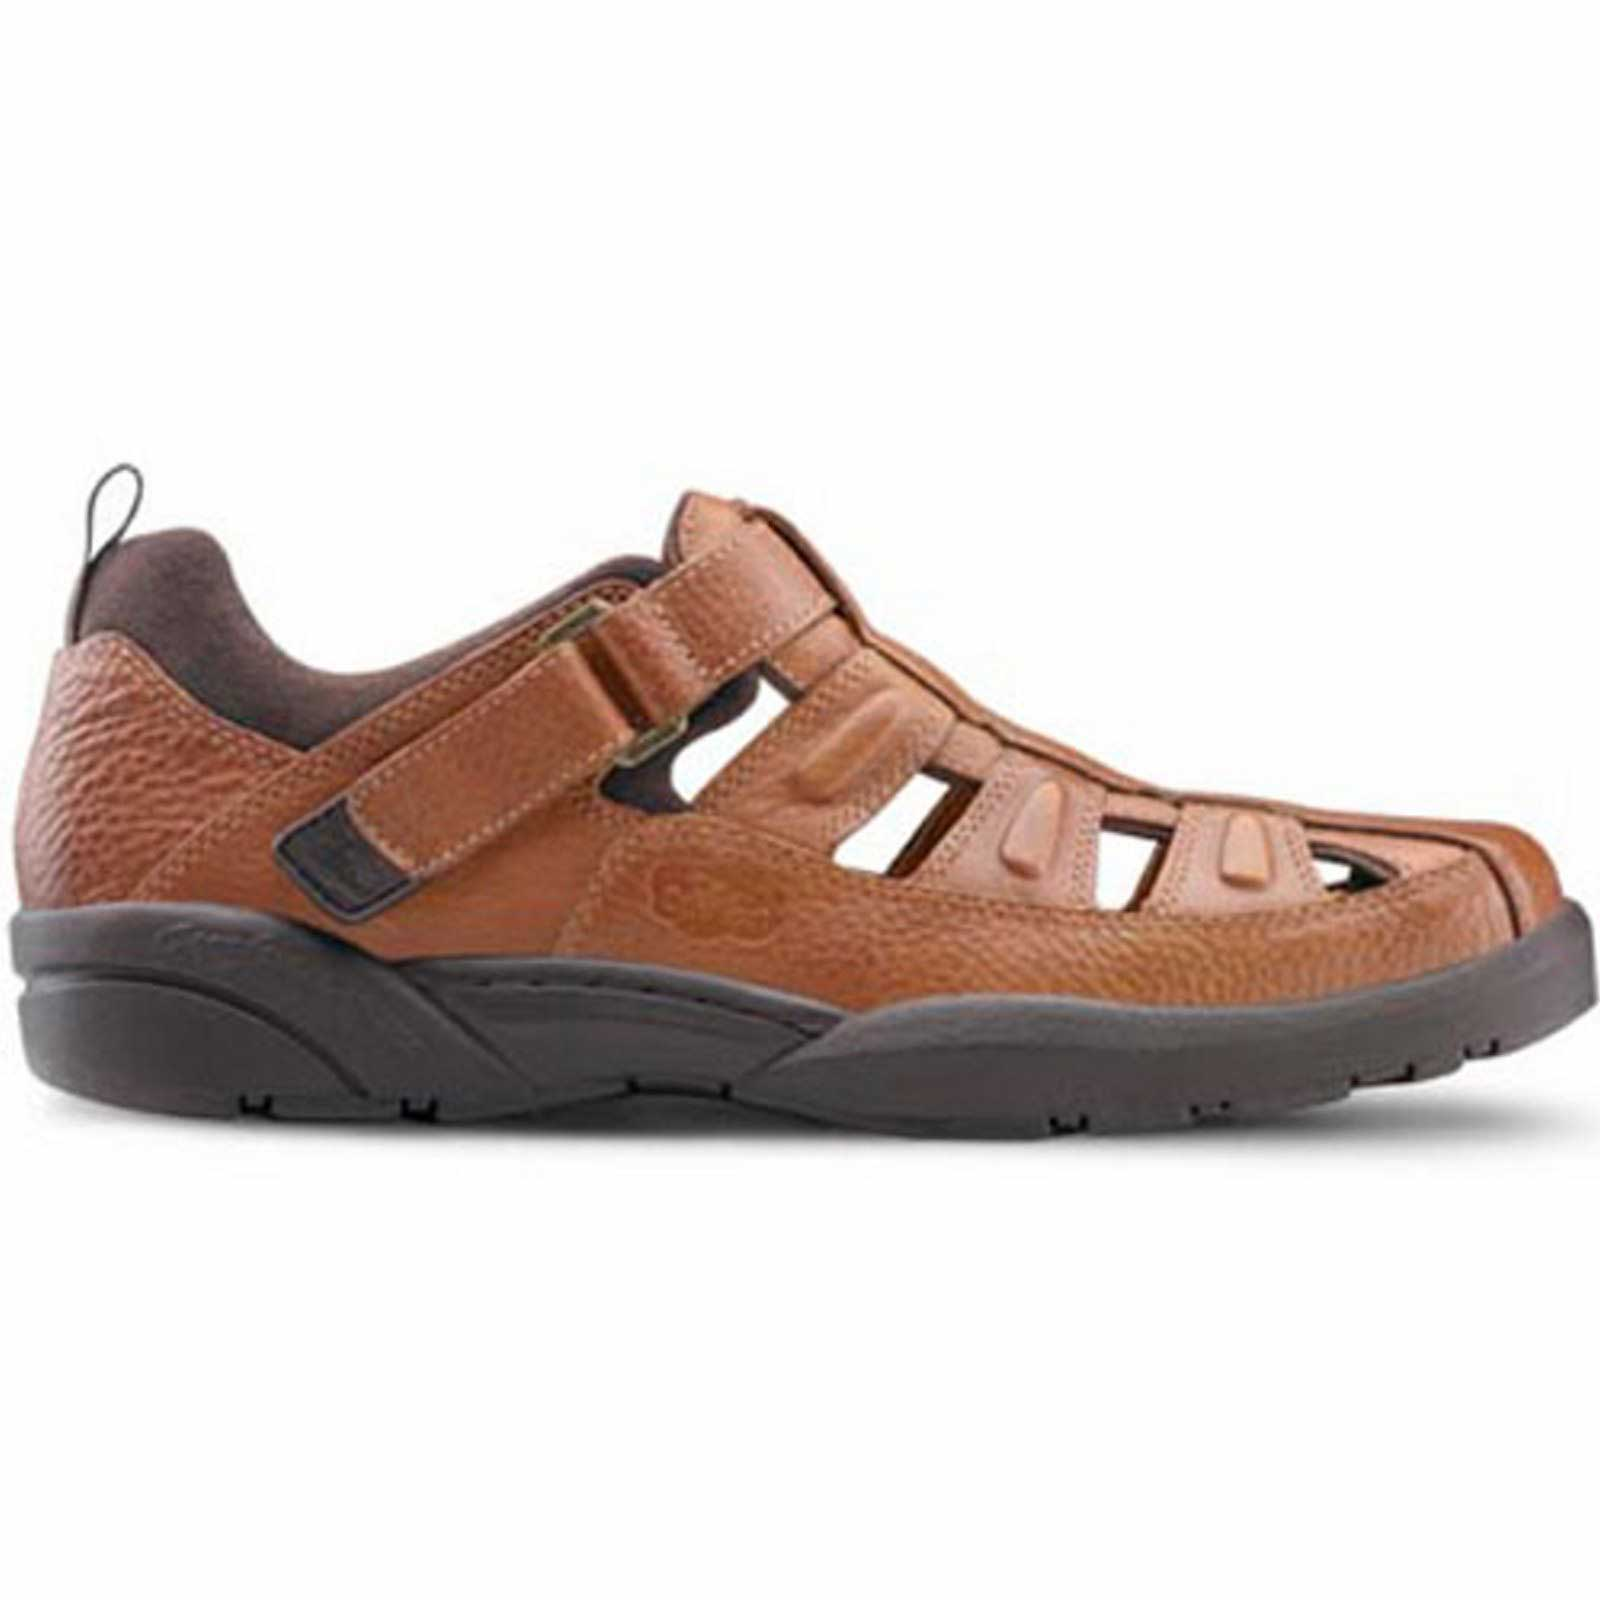 Dr comfort fisherman moderate sandal casual for Mens fishing sandals